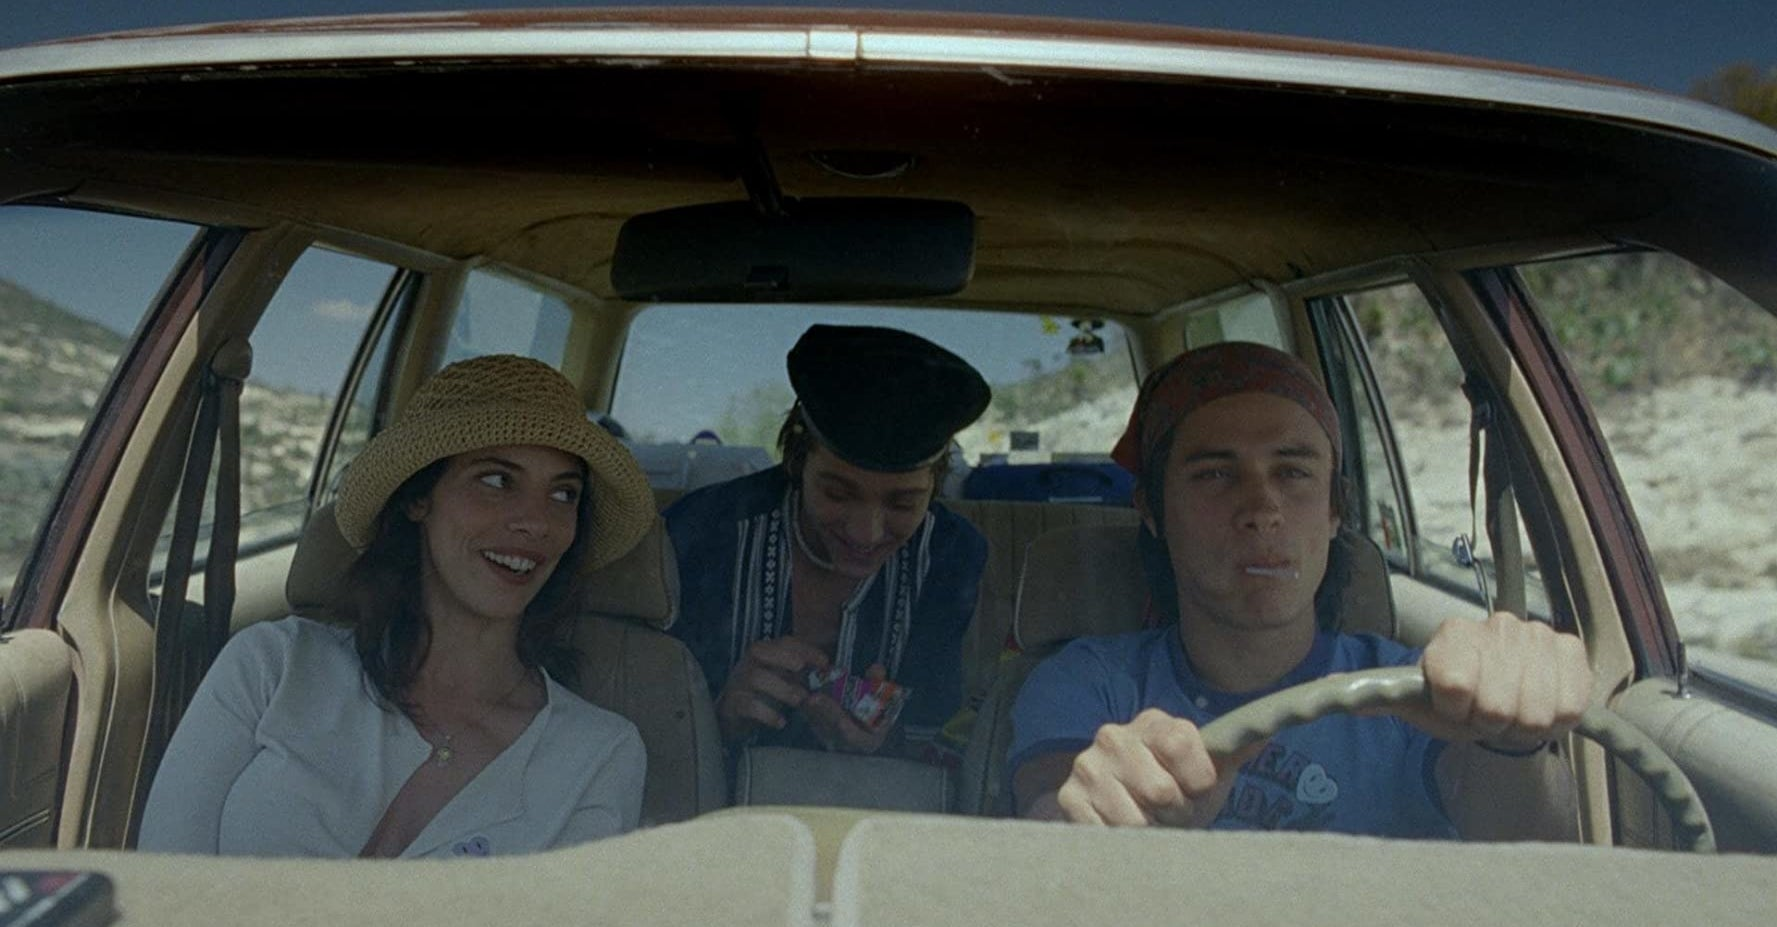 Luisa, Tenoch, and Julio riding in a car in Y tu mamá también